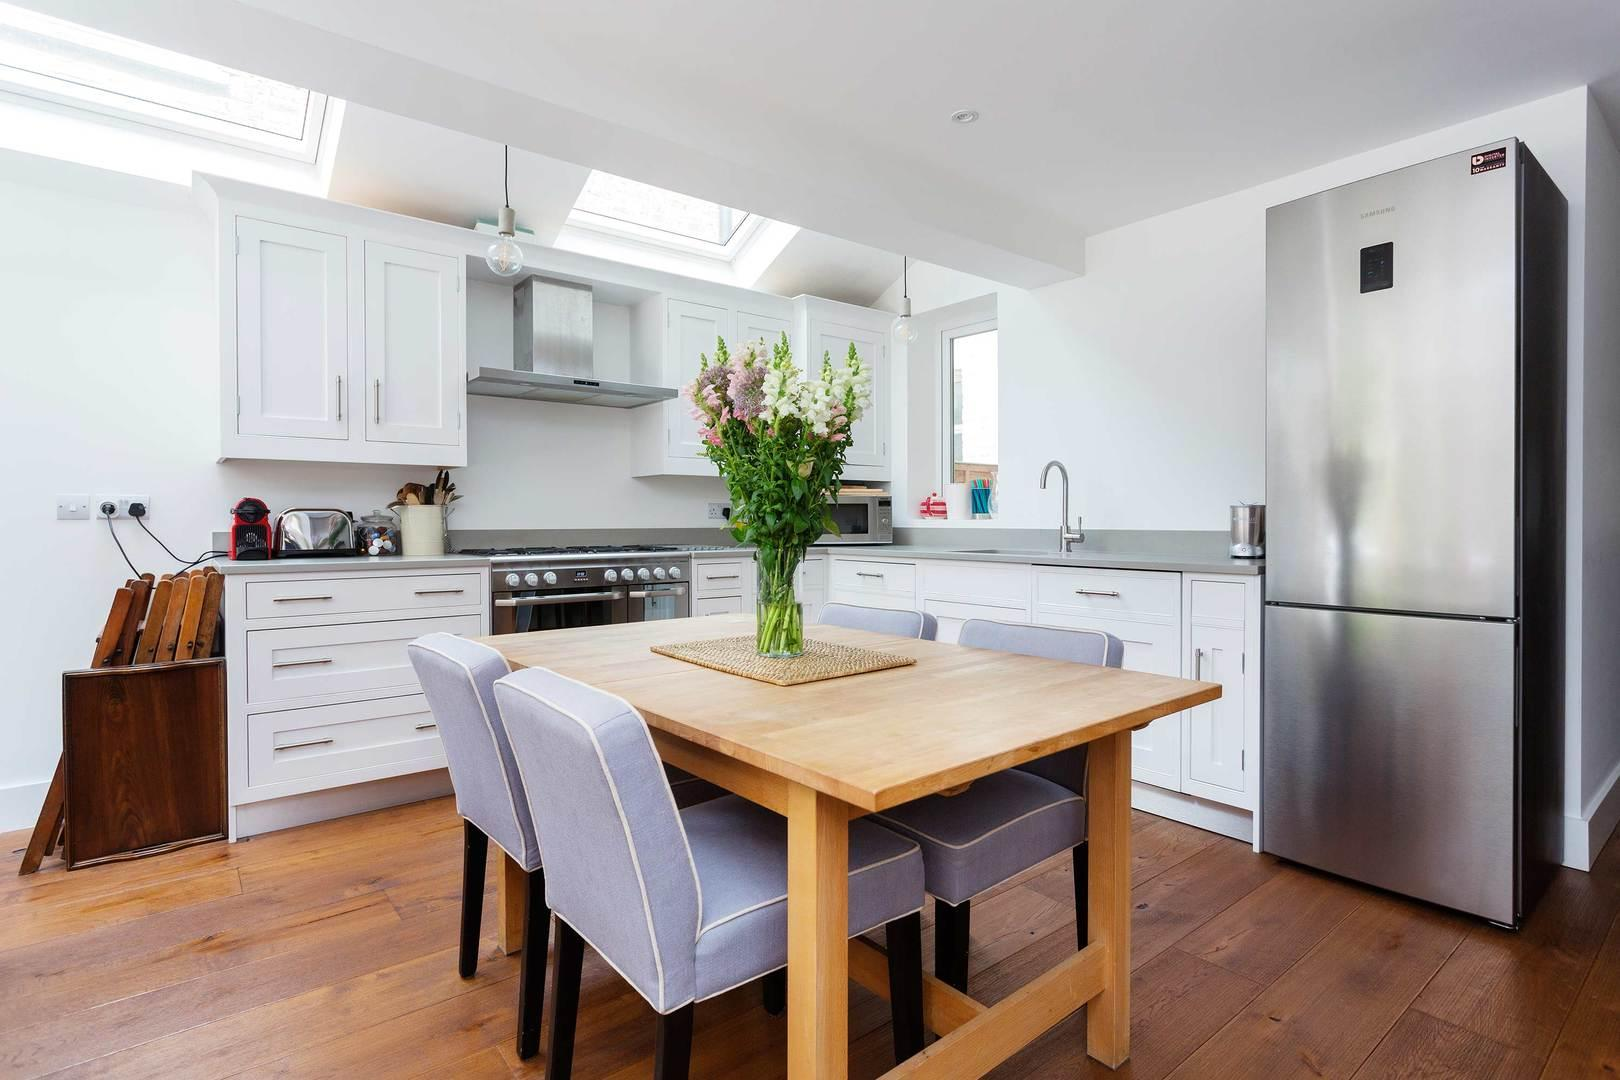 Property Image 2 - Handsome Shepherd's Bush Apartment with Patio Garden